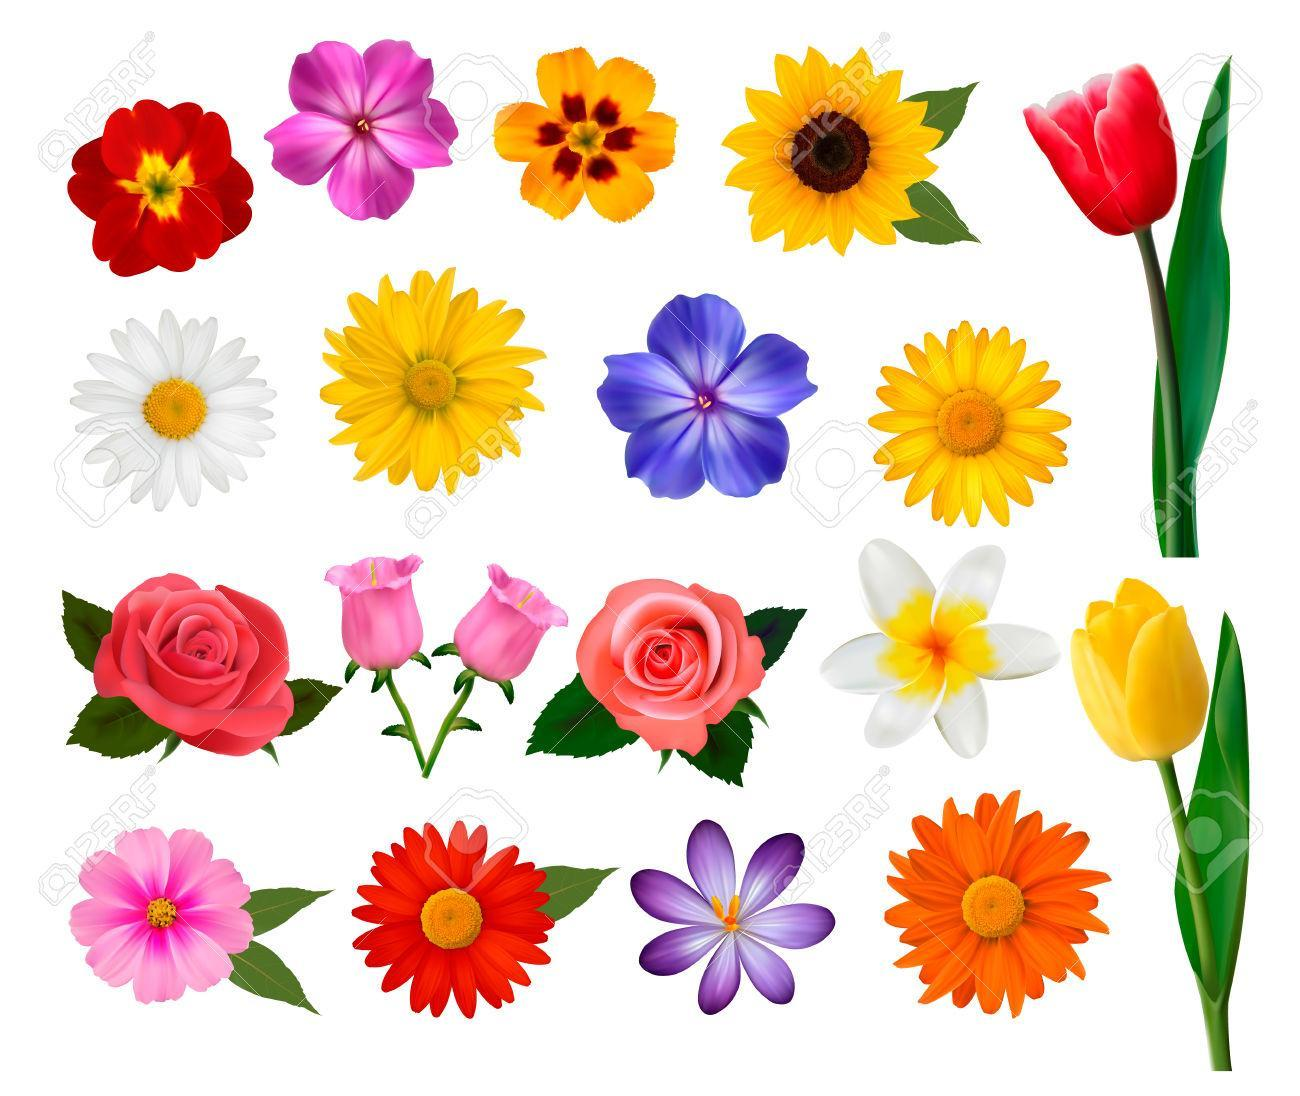 What is your favourite flower